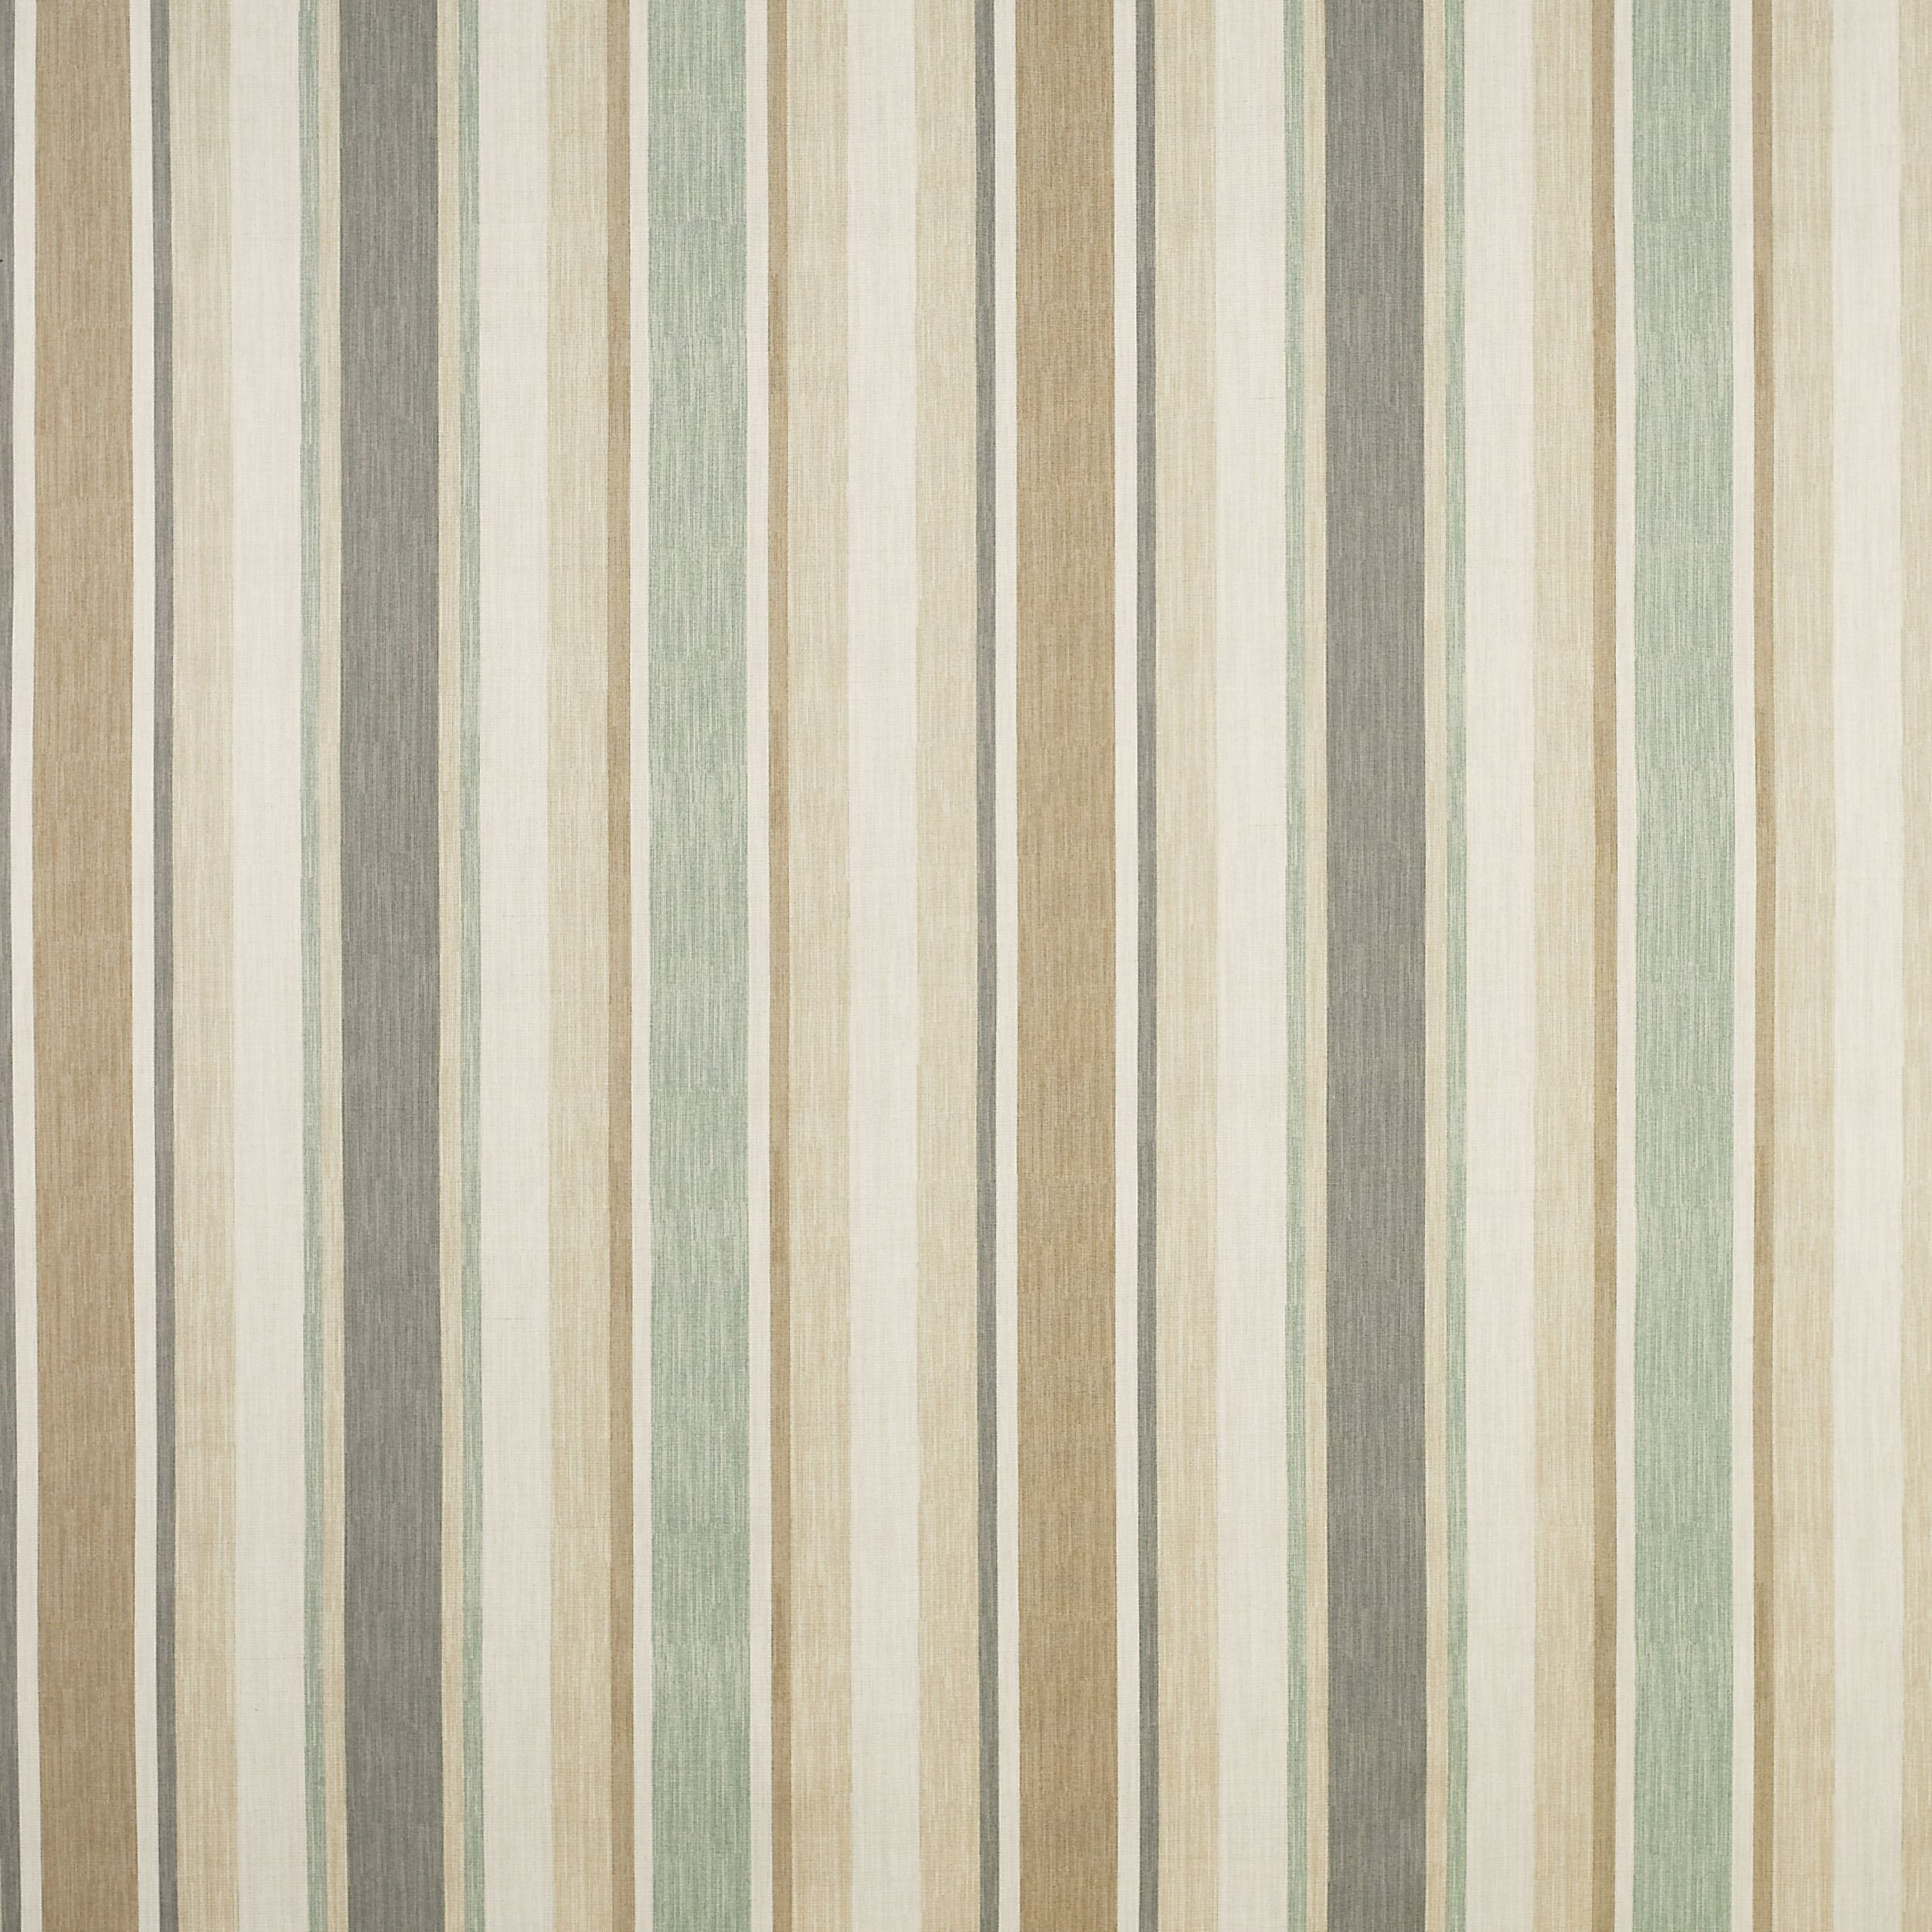 Awning Stripe Cotton/Linen Fabric Biscuit/Eau De Nil at LAURA ASHLEY ...